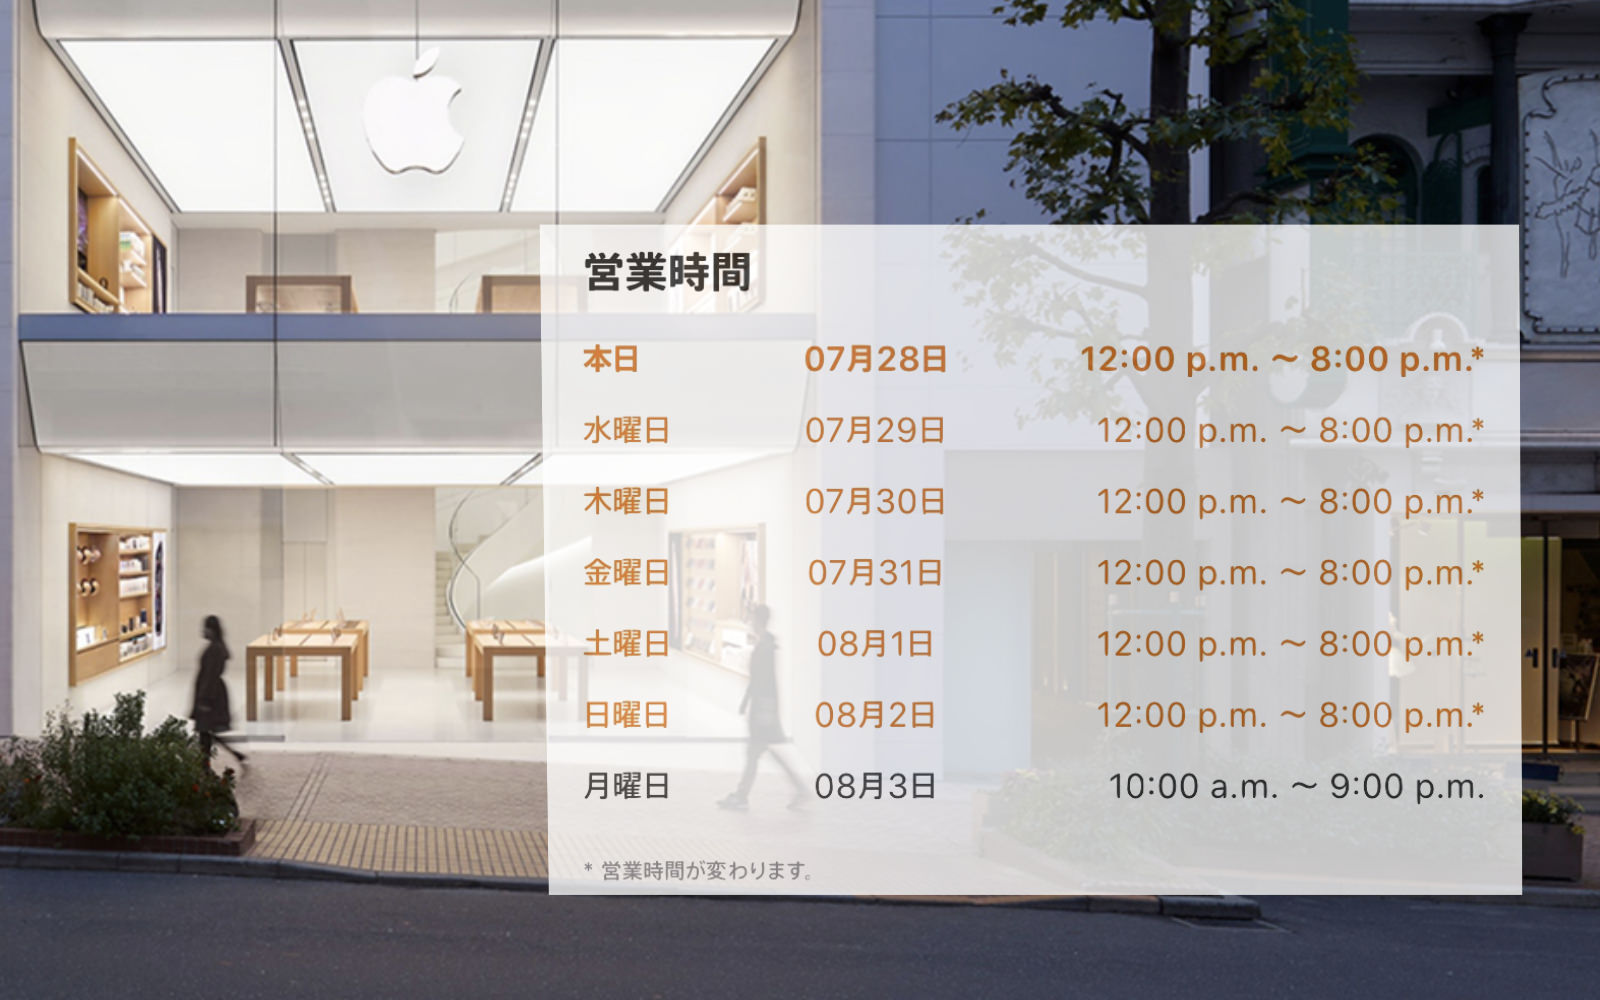 Apple Shibuya Going back to normal schedule